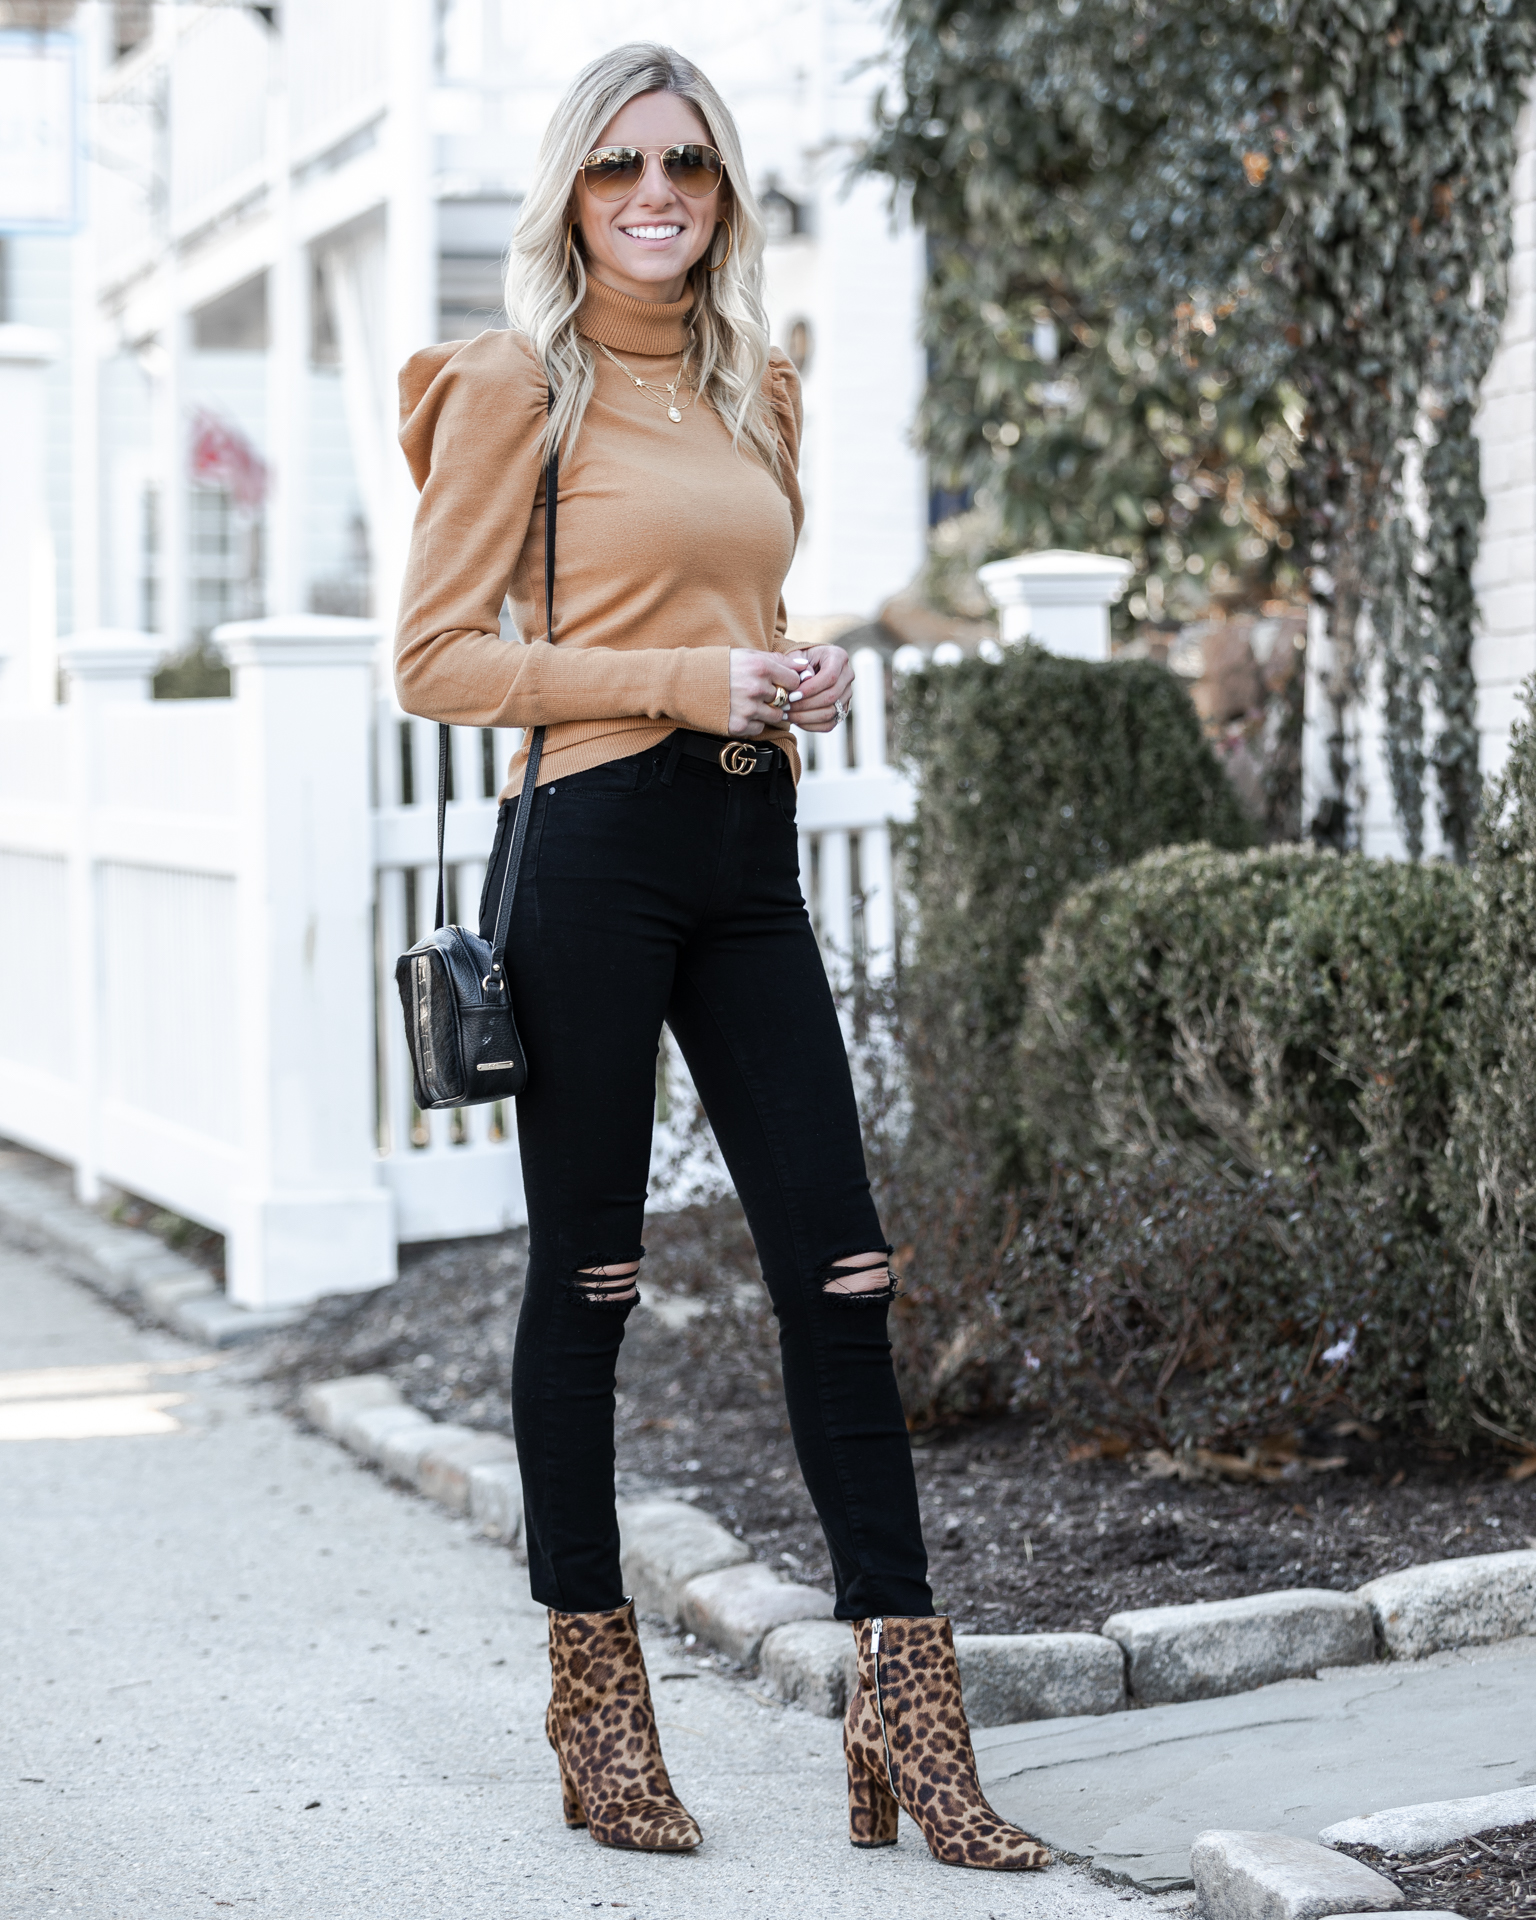 nyc-street-style-chic-look-the-glamorous-gal